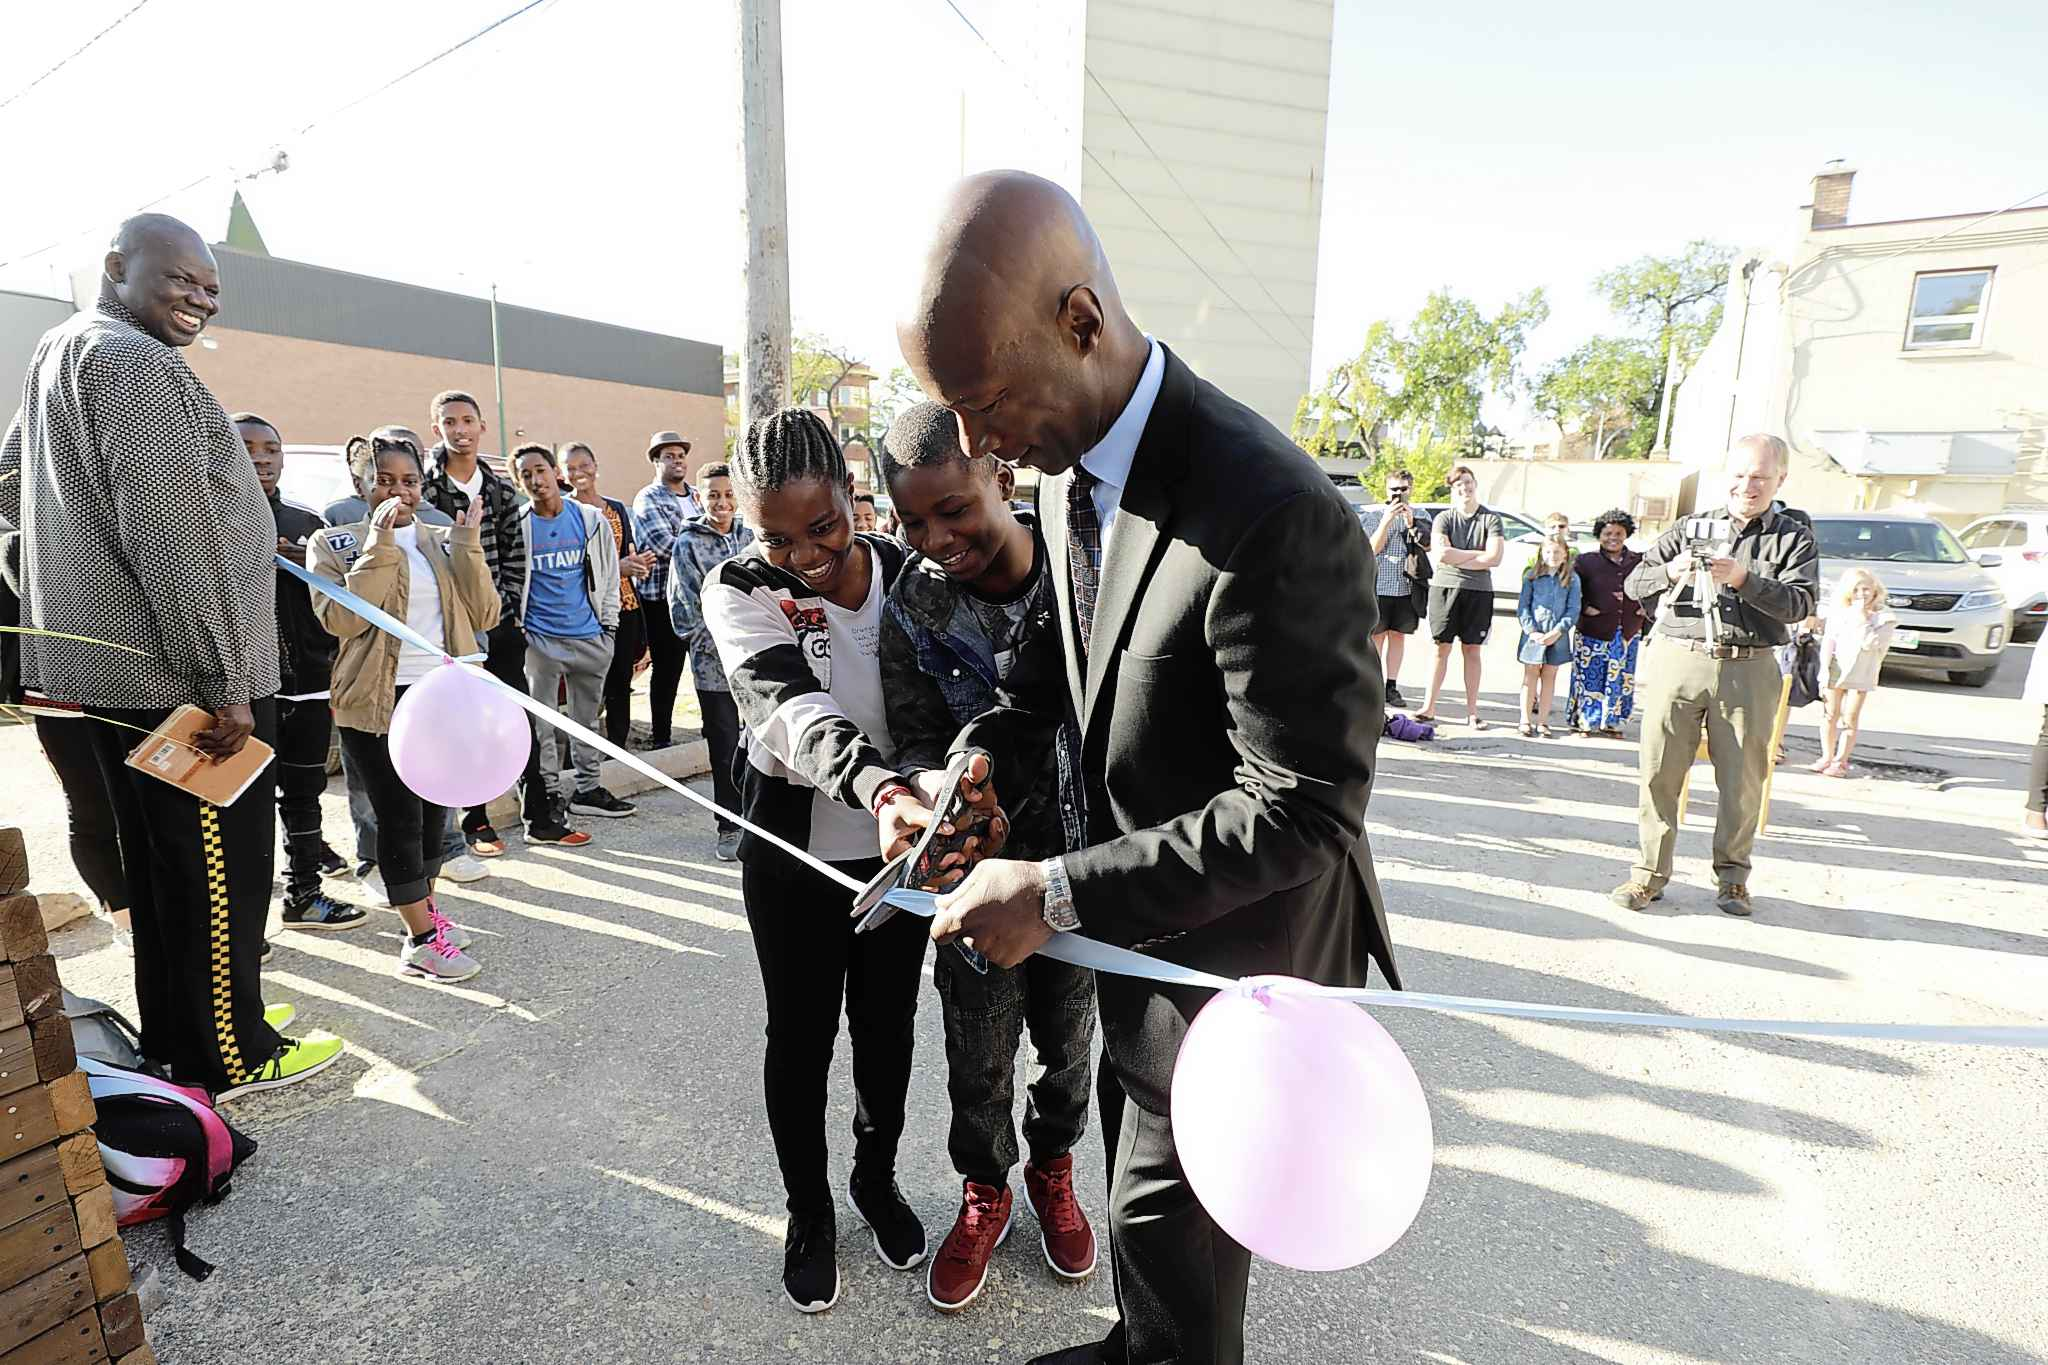 Former City of Winnipeg Police Chief, Devon Clunis, and students, Christina Dusabimana, left, and Gervas Kezimana, cut the ribbon before students enter school for the first day Wednesday.